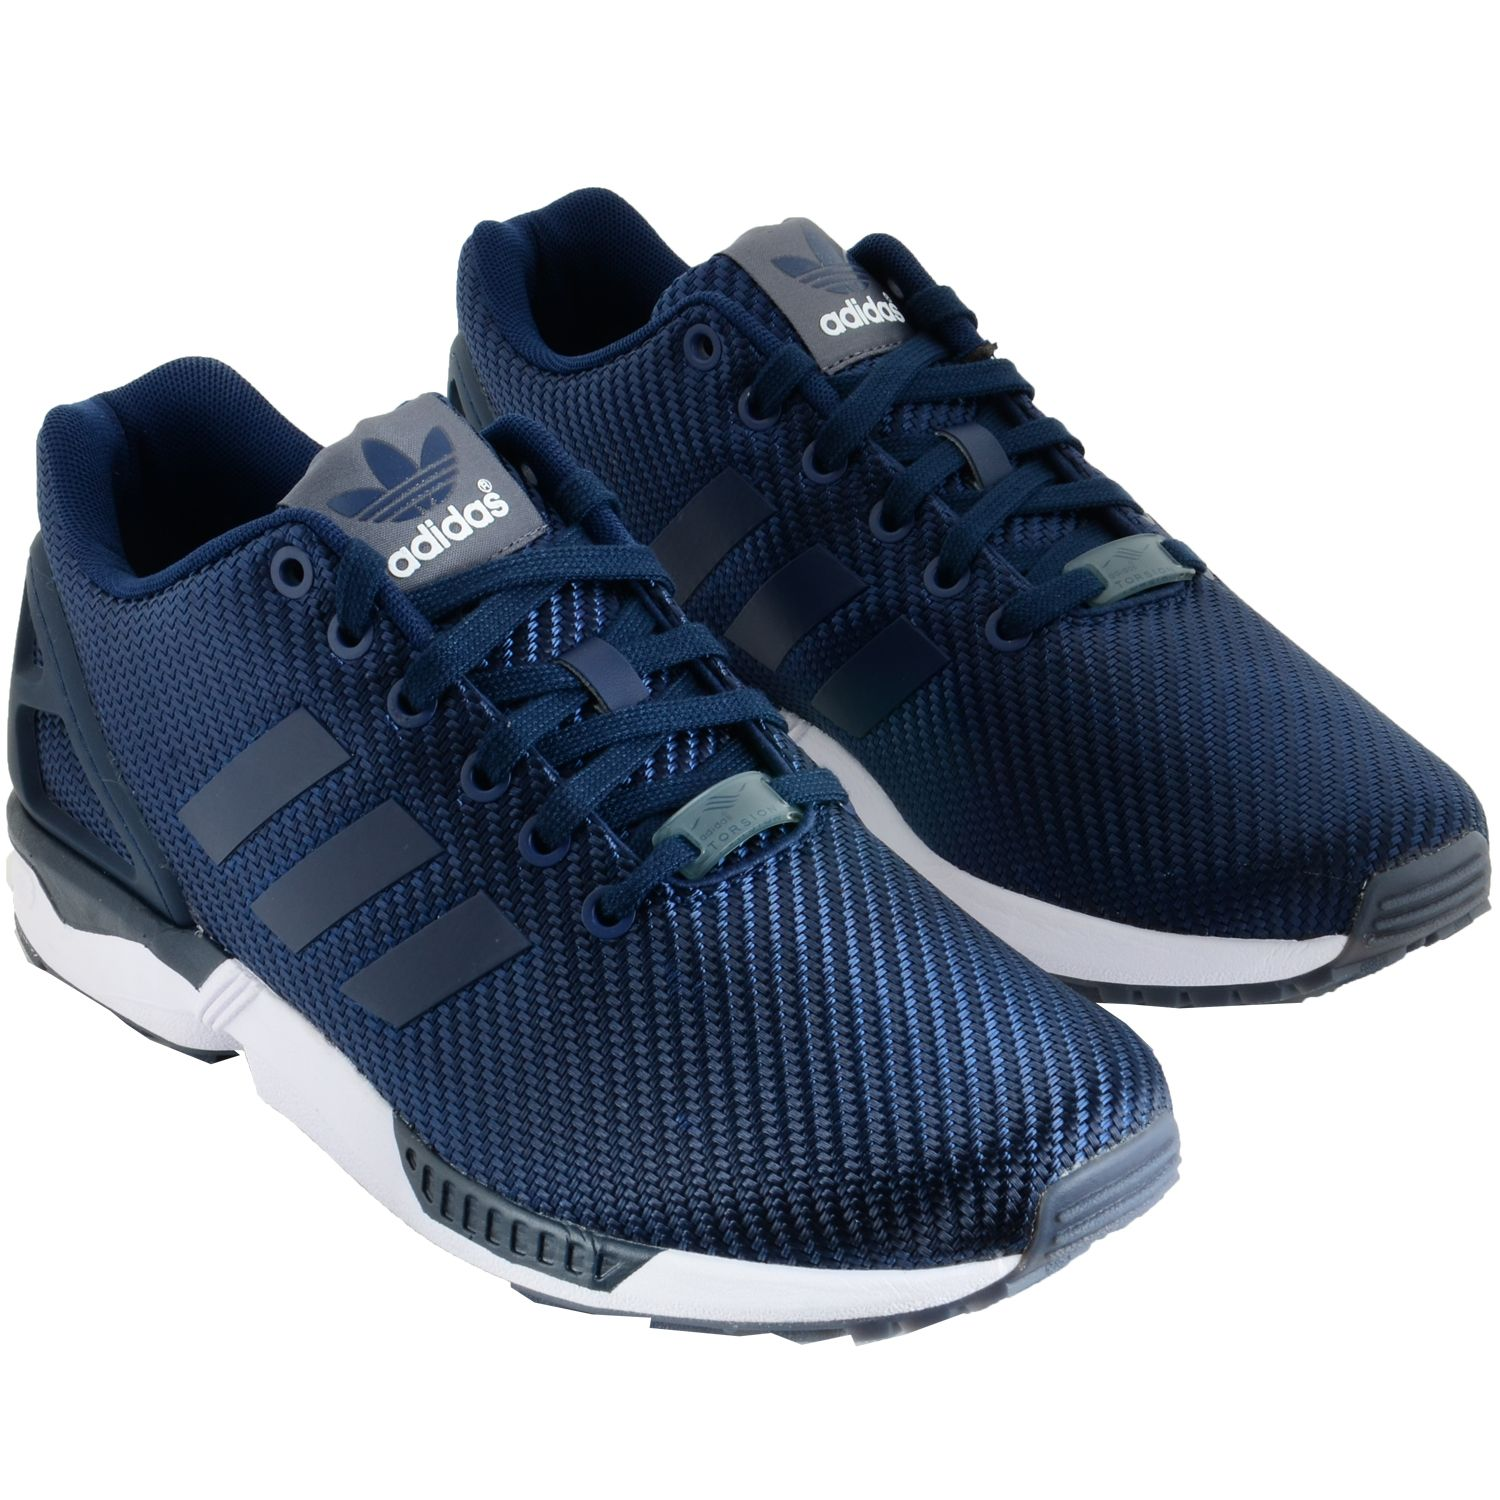 adidas-shoe-zx-flux-low-sneaker-navy-white_137878_0.